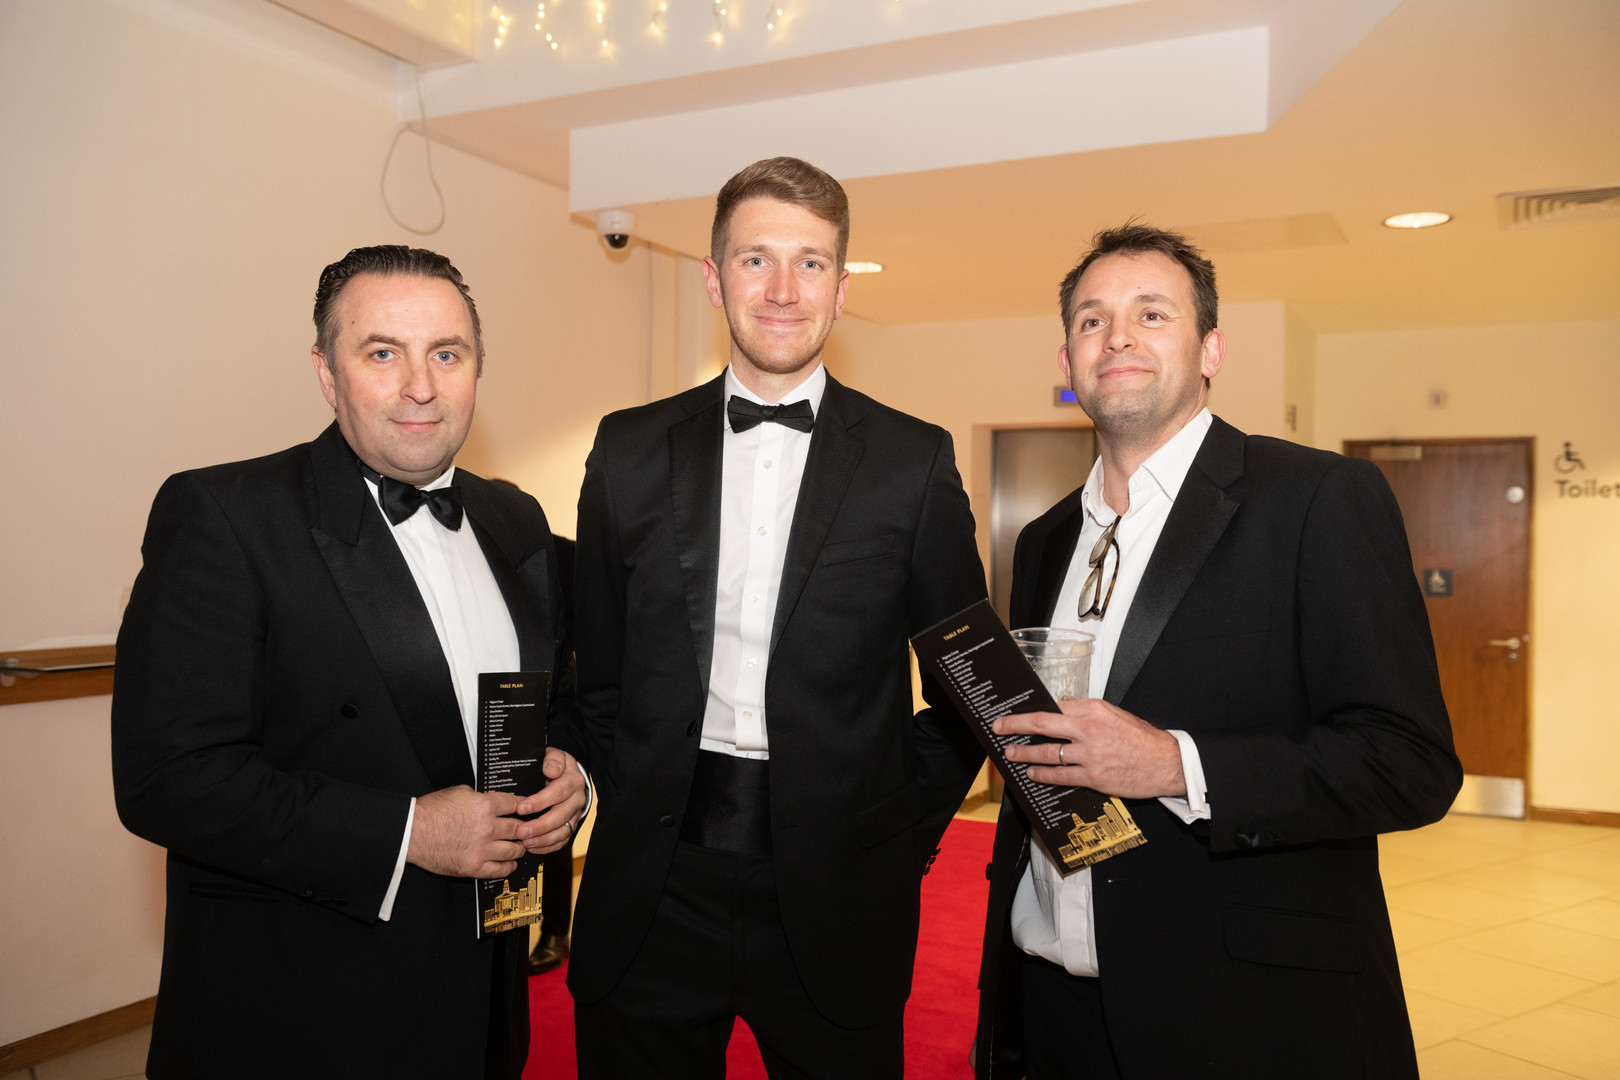 SurreyPropertyAwards_Nov2019_195.jpg